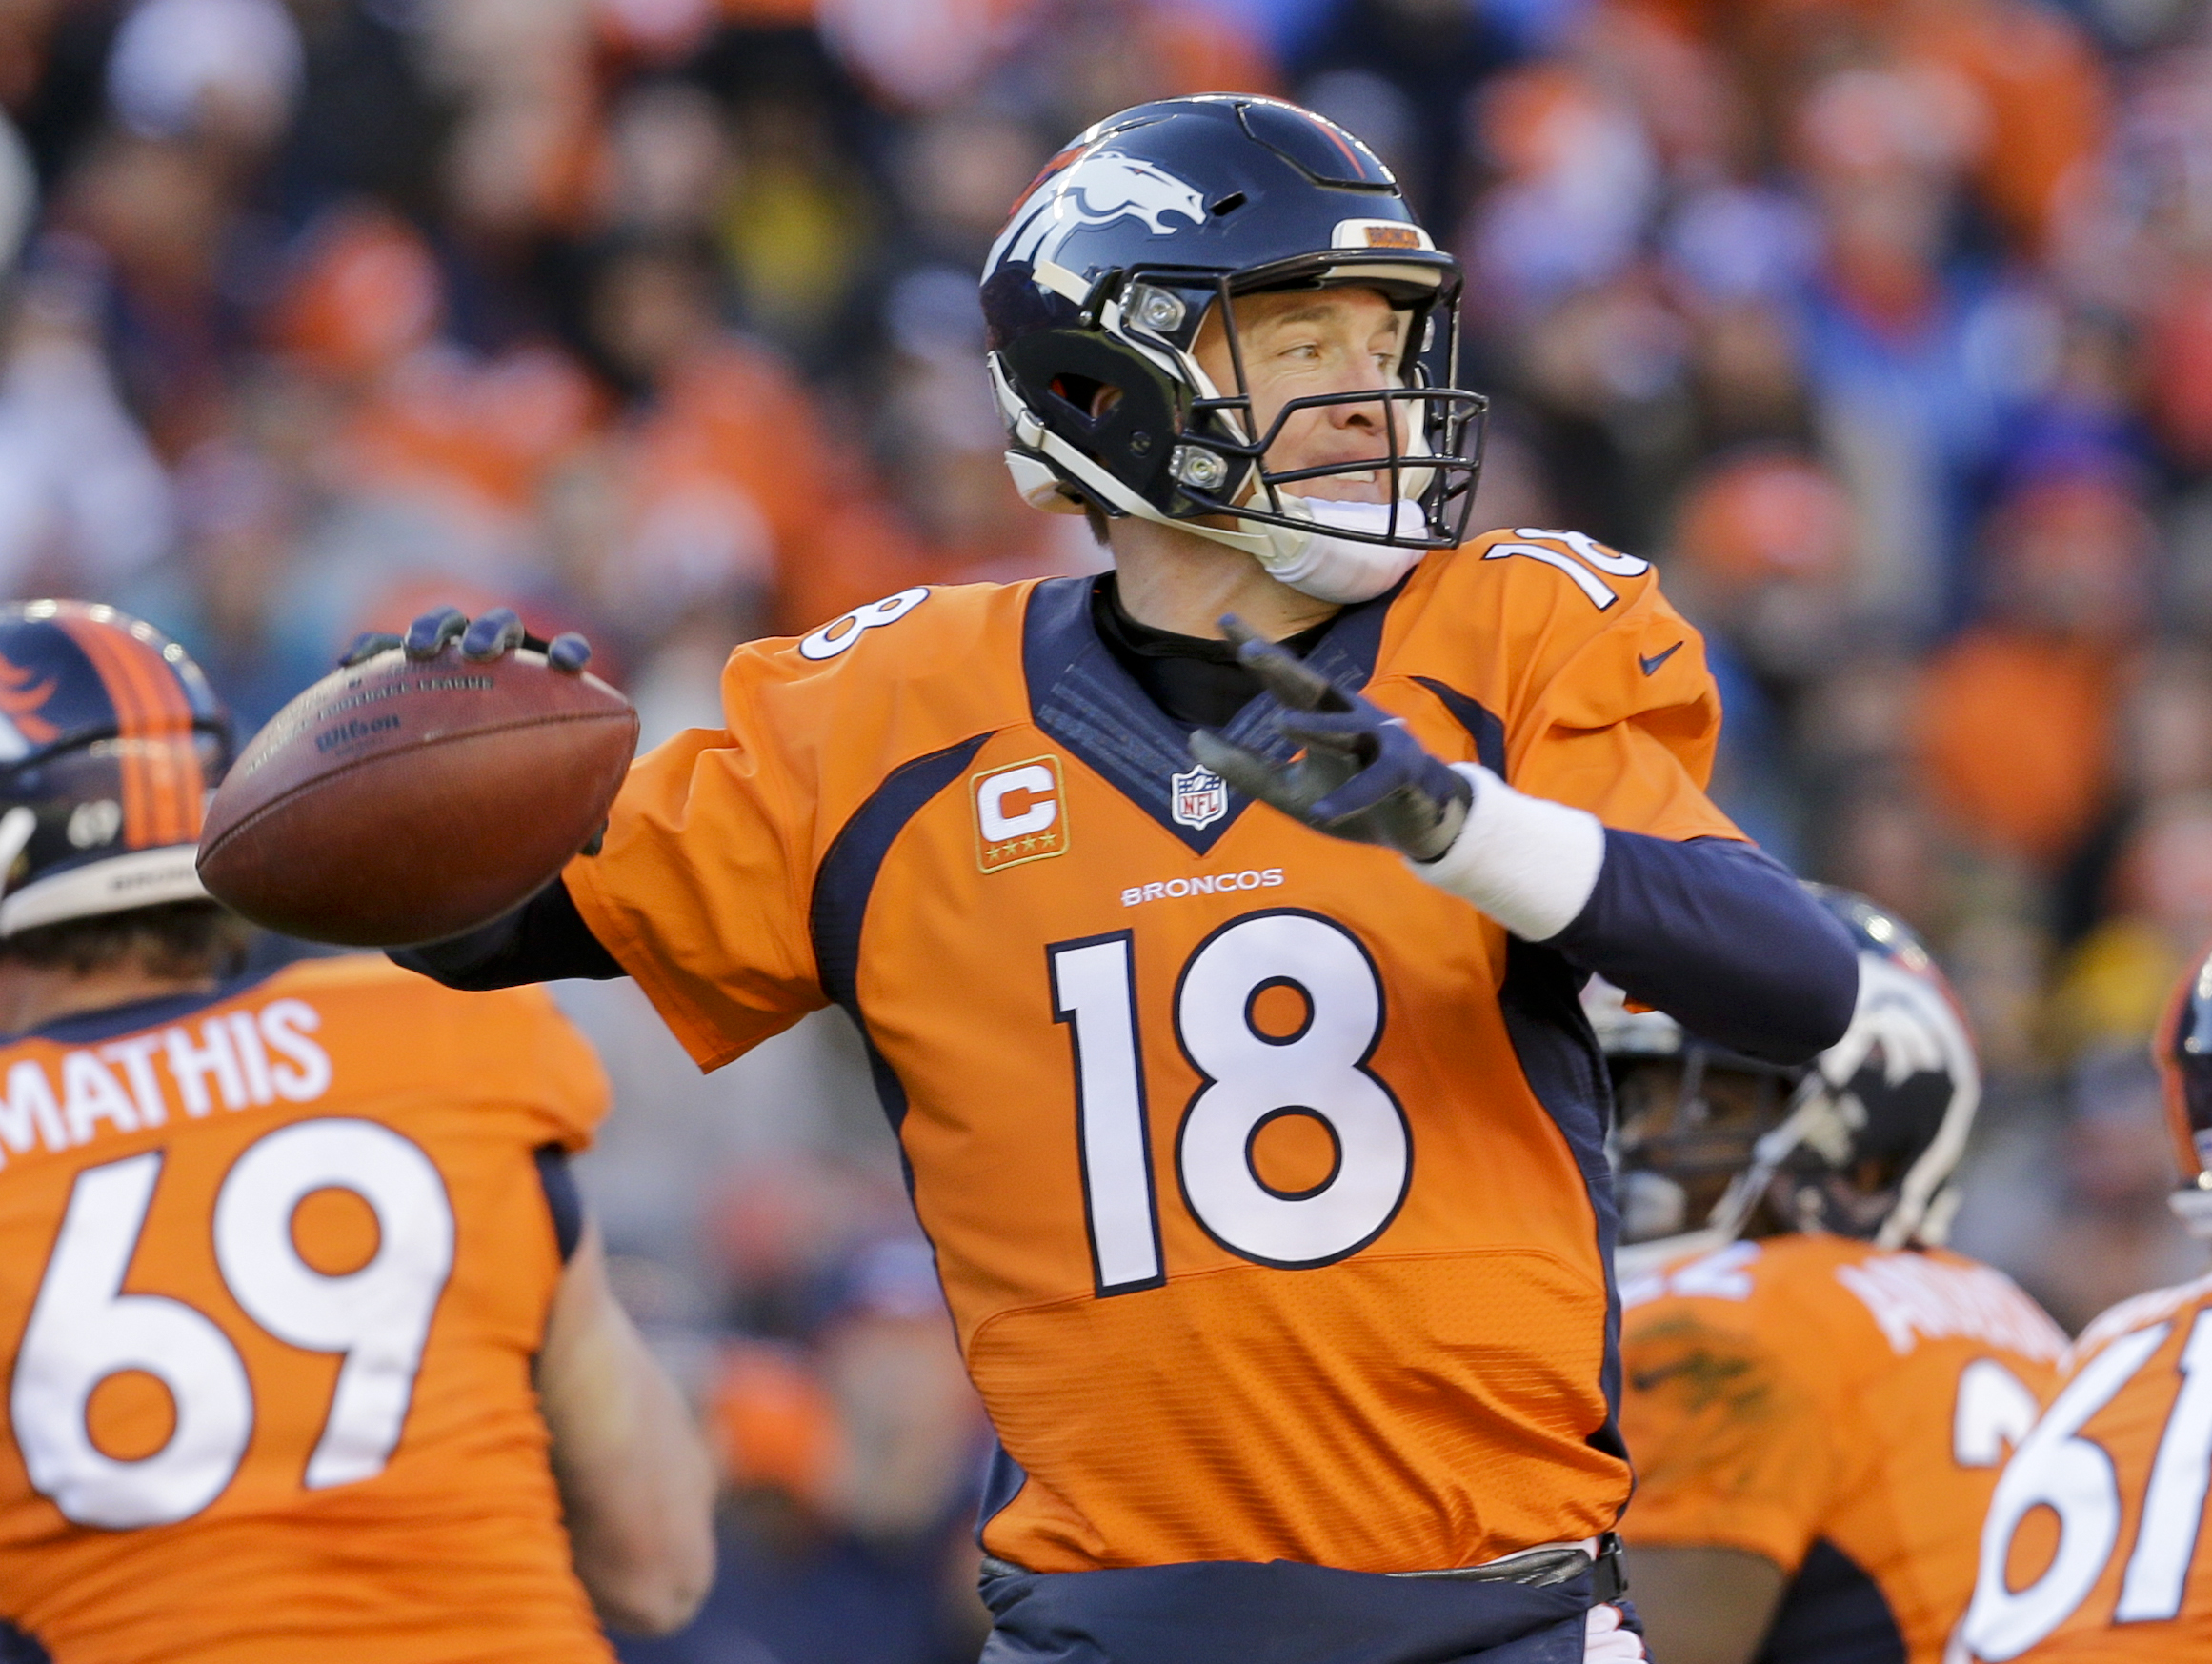 Photo: Peyton Manning, Jan. 2016 (AP Photo)